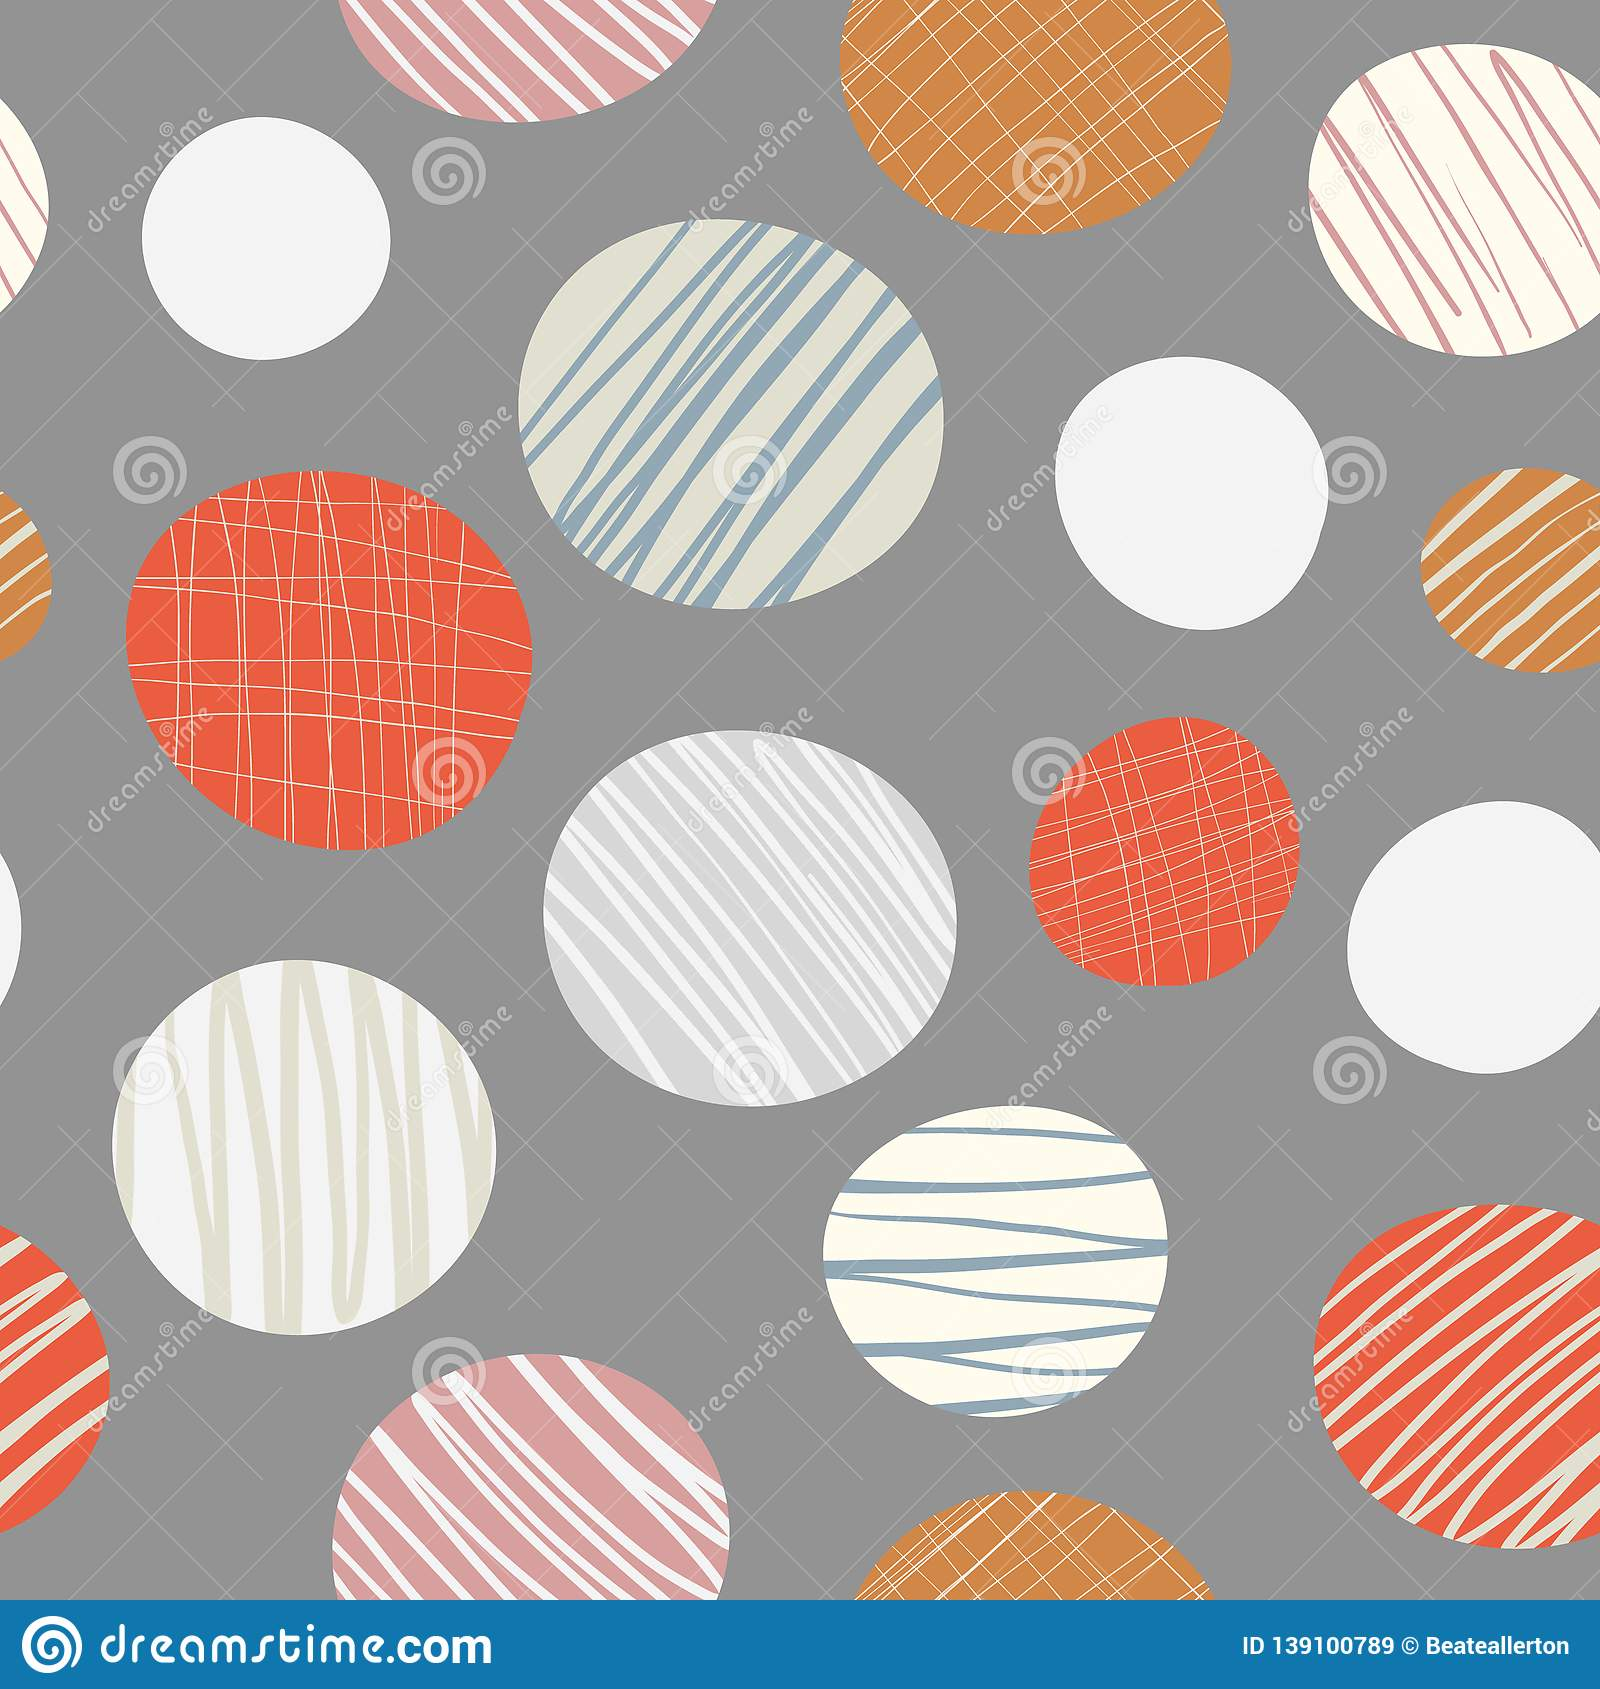 Red, orange, cream hand drawn circles seamless vector pattern on neutral brown background. Stylish contemporary design